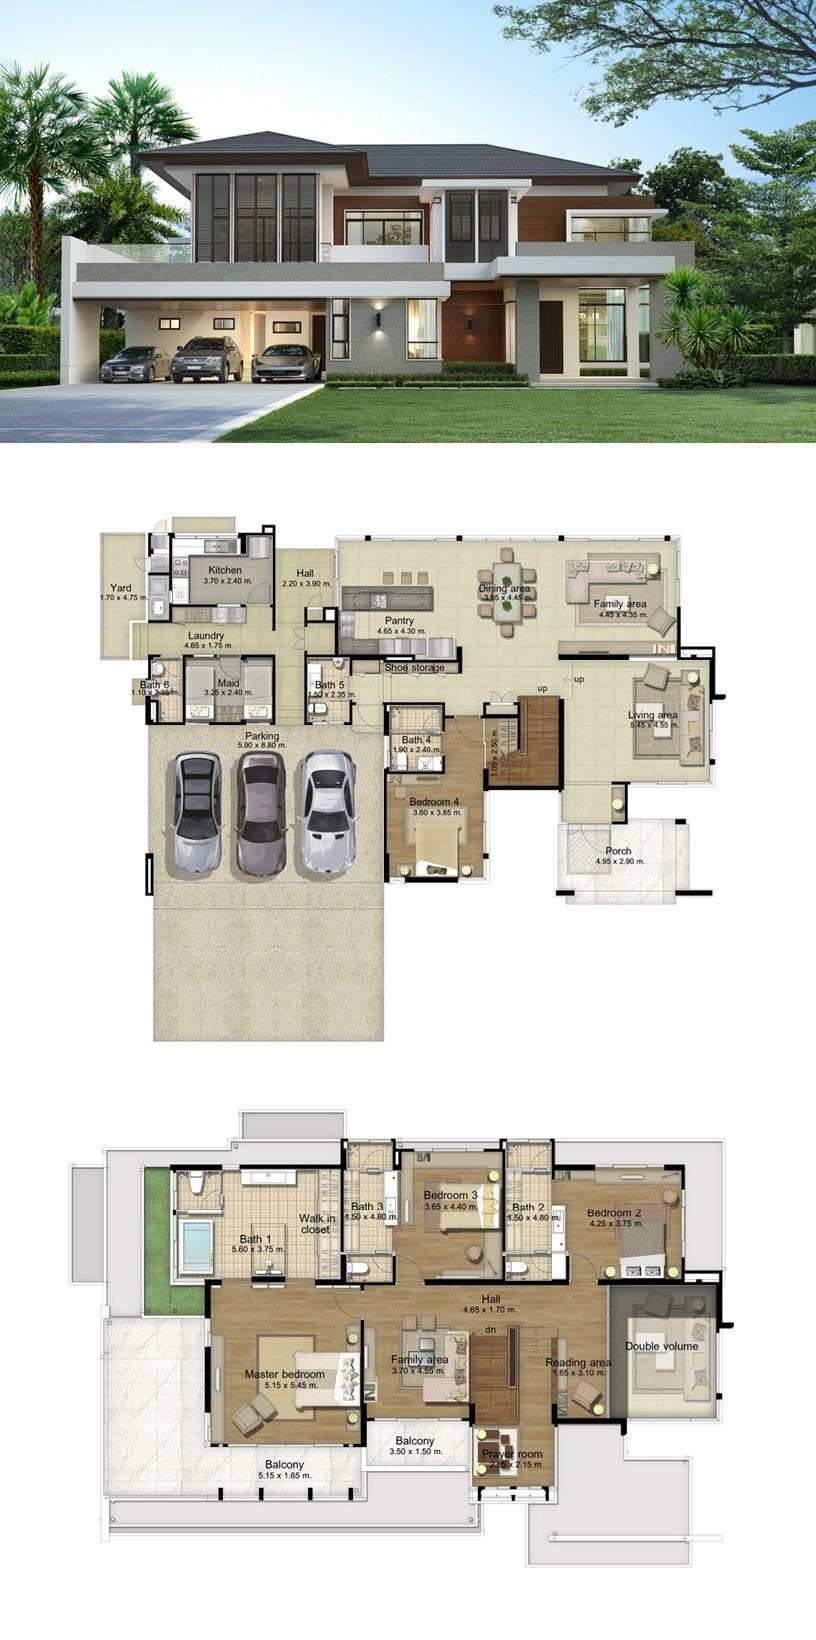 House Plans and Layouts Inspirational Land and Houses